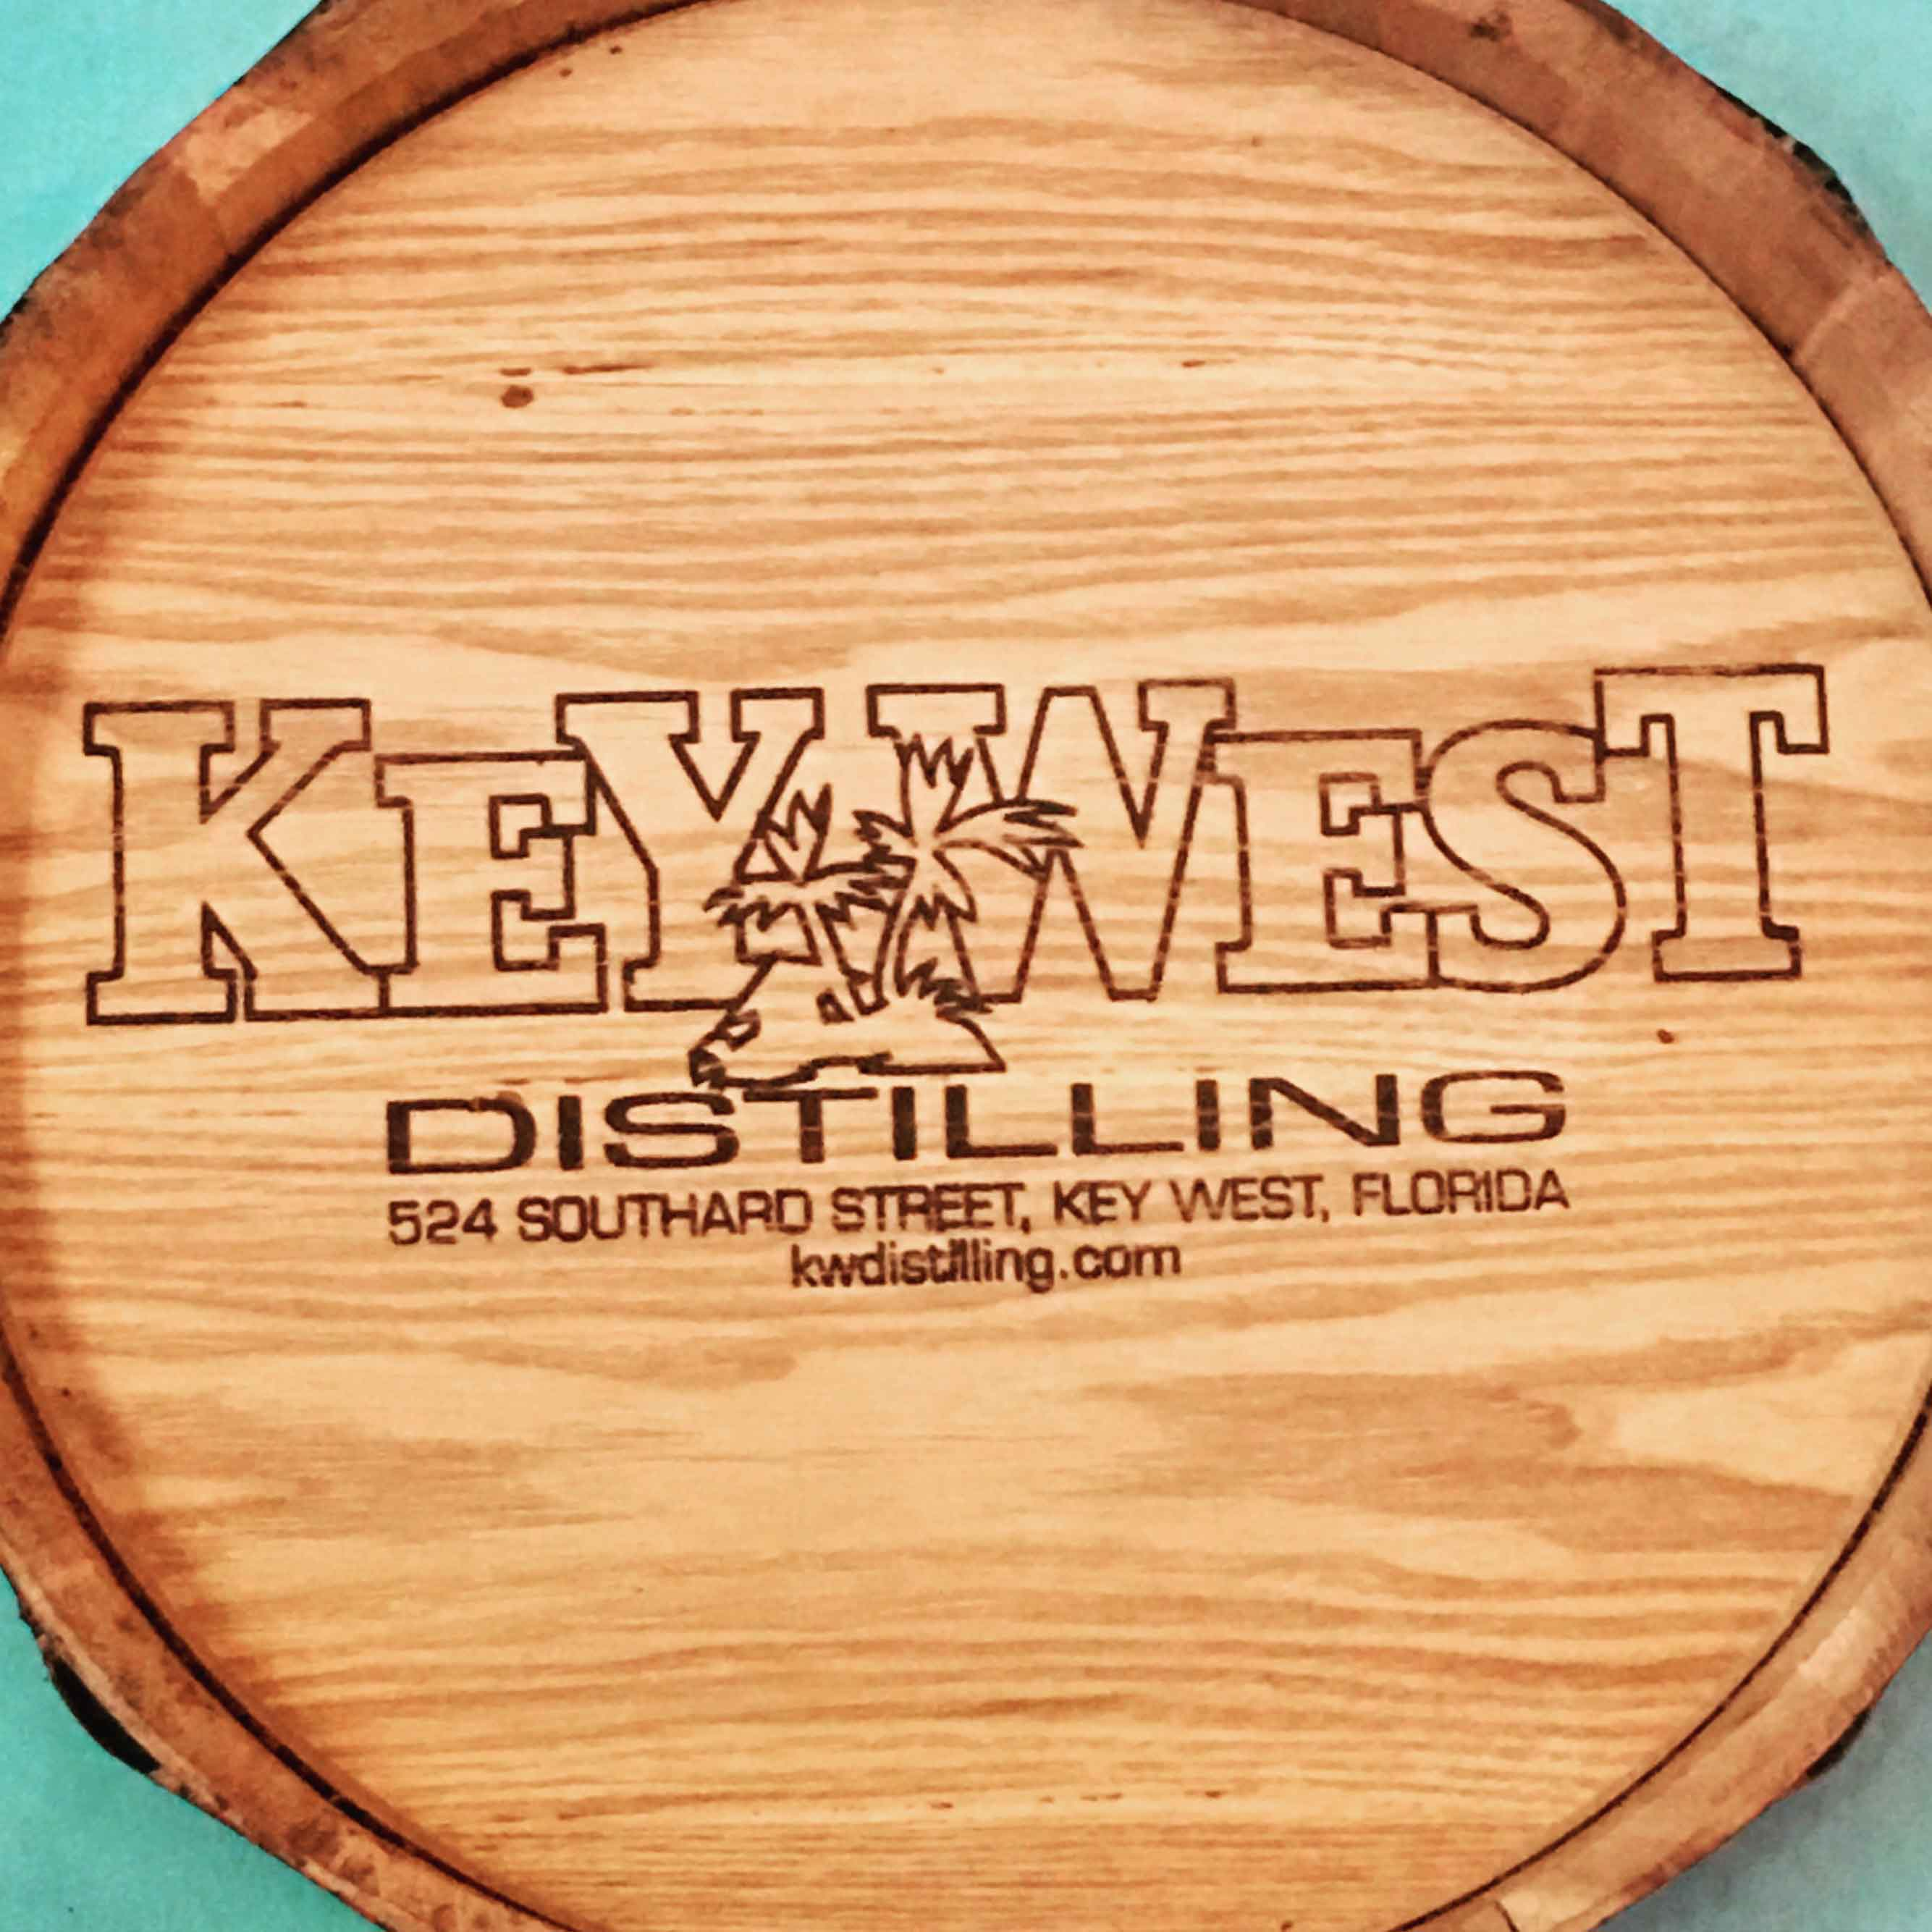 key west distilling